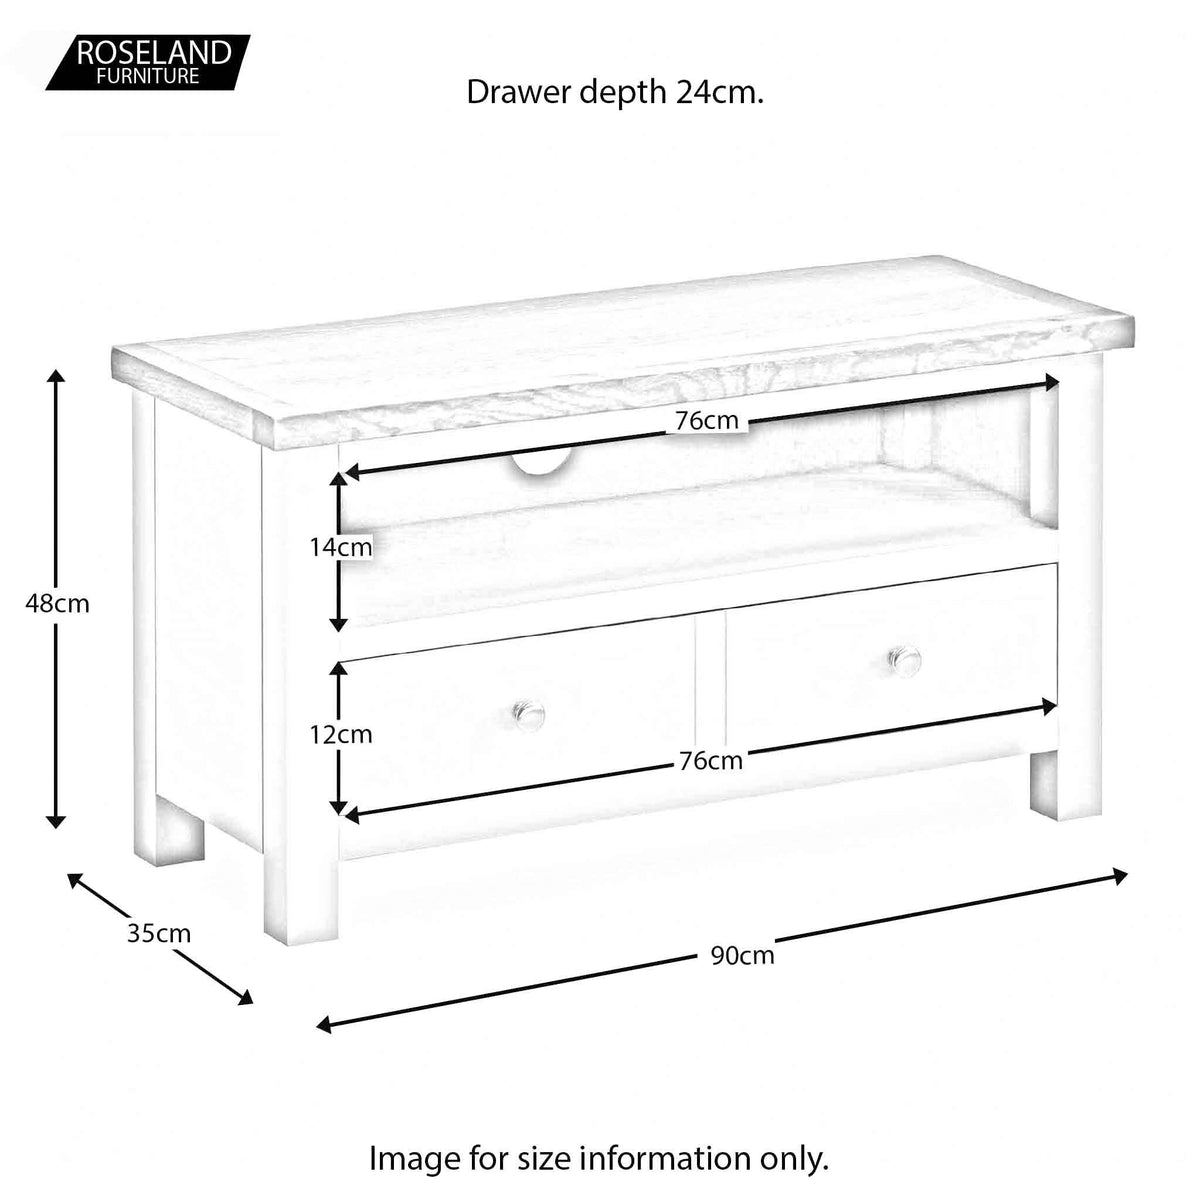 Farrow White 90cm TV Stand unit dimensions